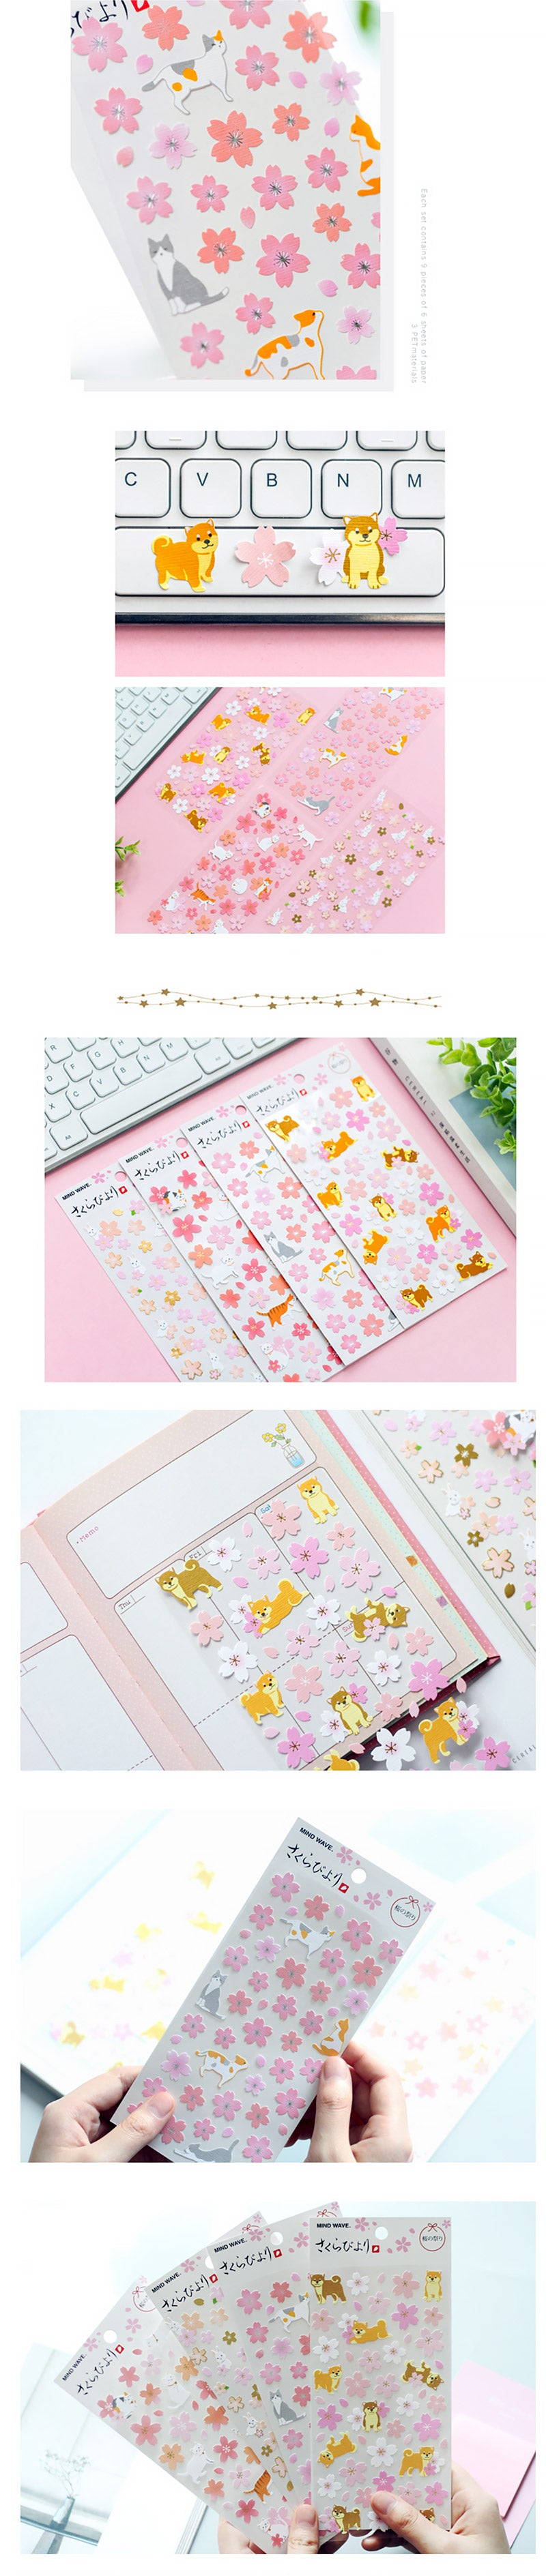 Kawaii Sakura Blossom and Animal Cartoon Stickers - Detail